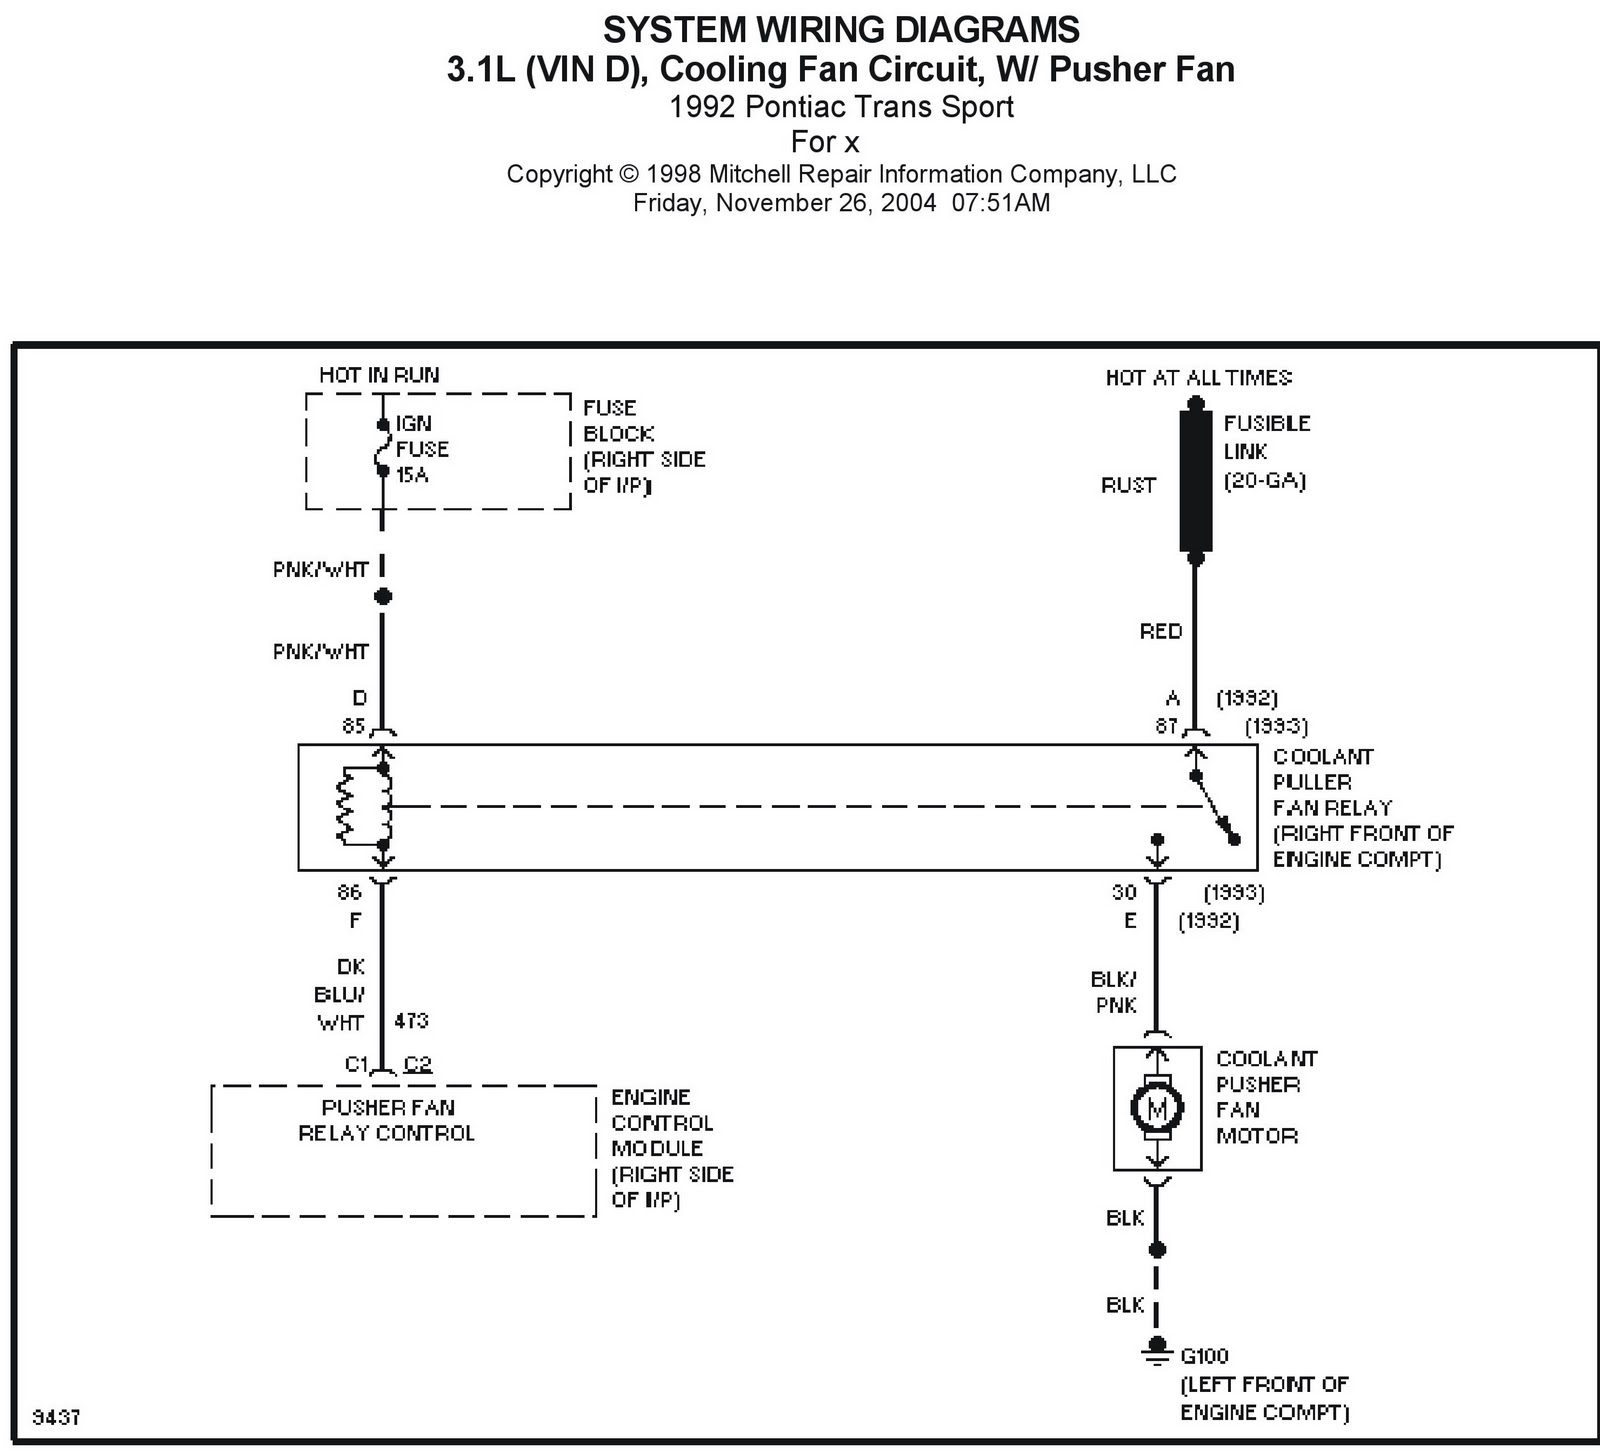 1992 pontiac trans sport cooling fan circuits system wiring diagrams [ 1600 x 1453 Pixel ]